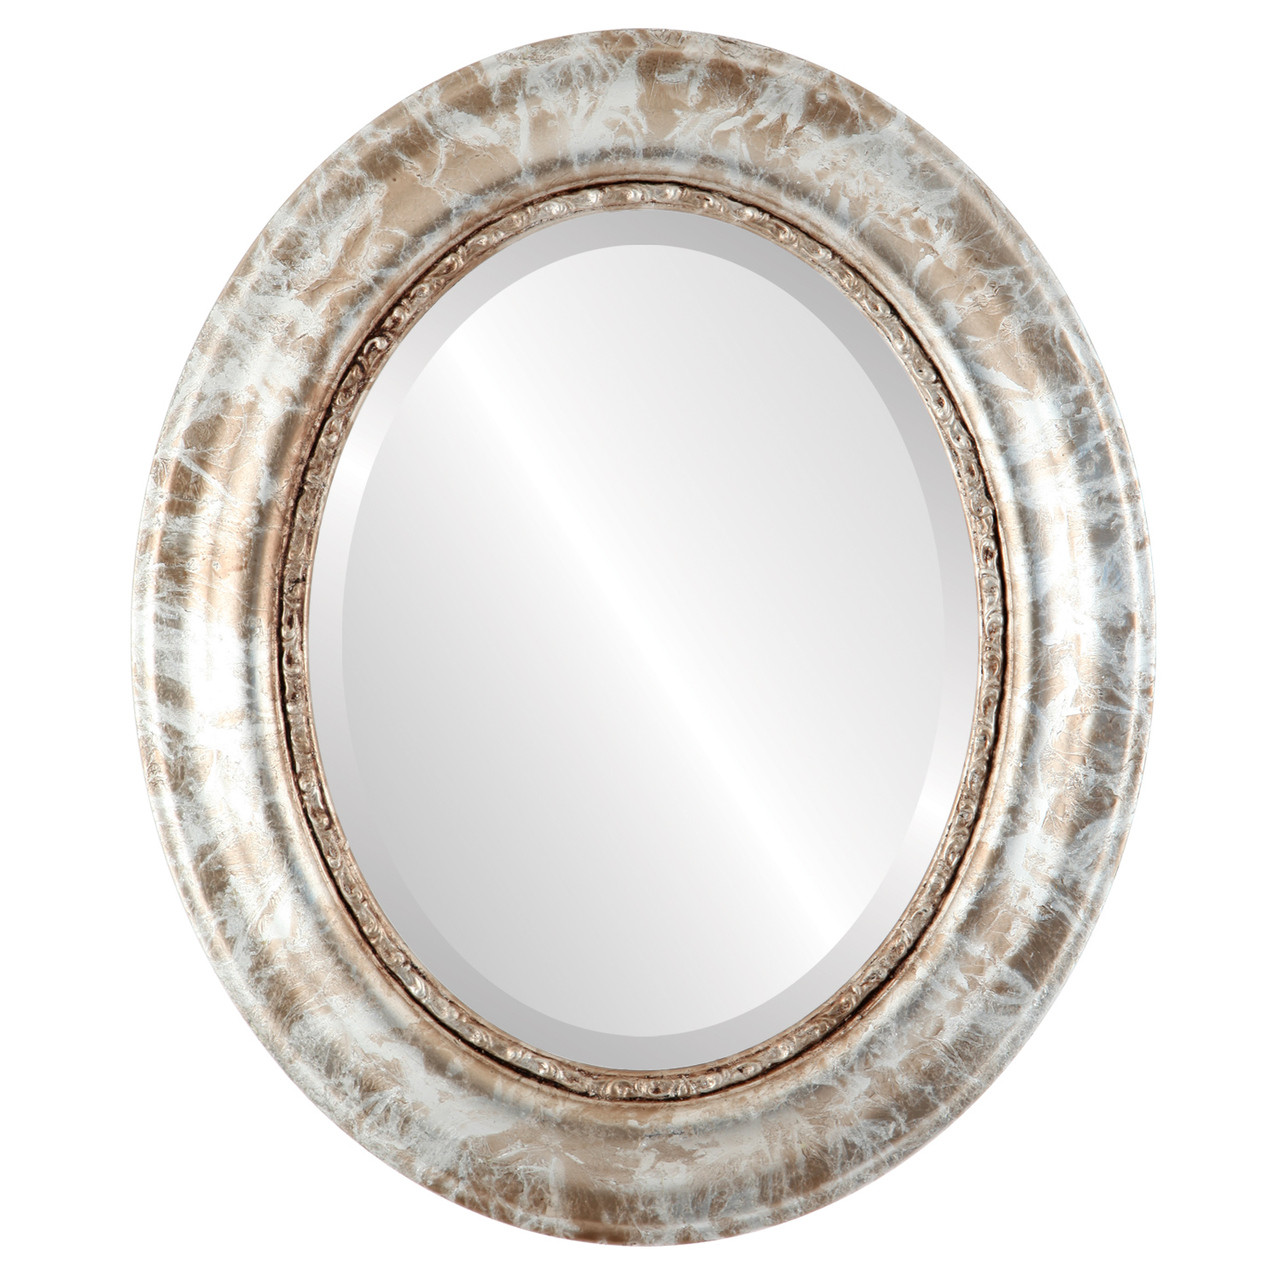 Vintage Silver Oval Mirrors From 177 Free Shipping